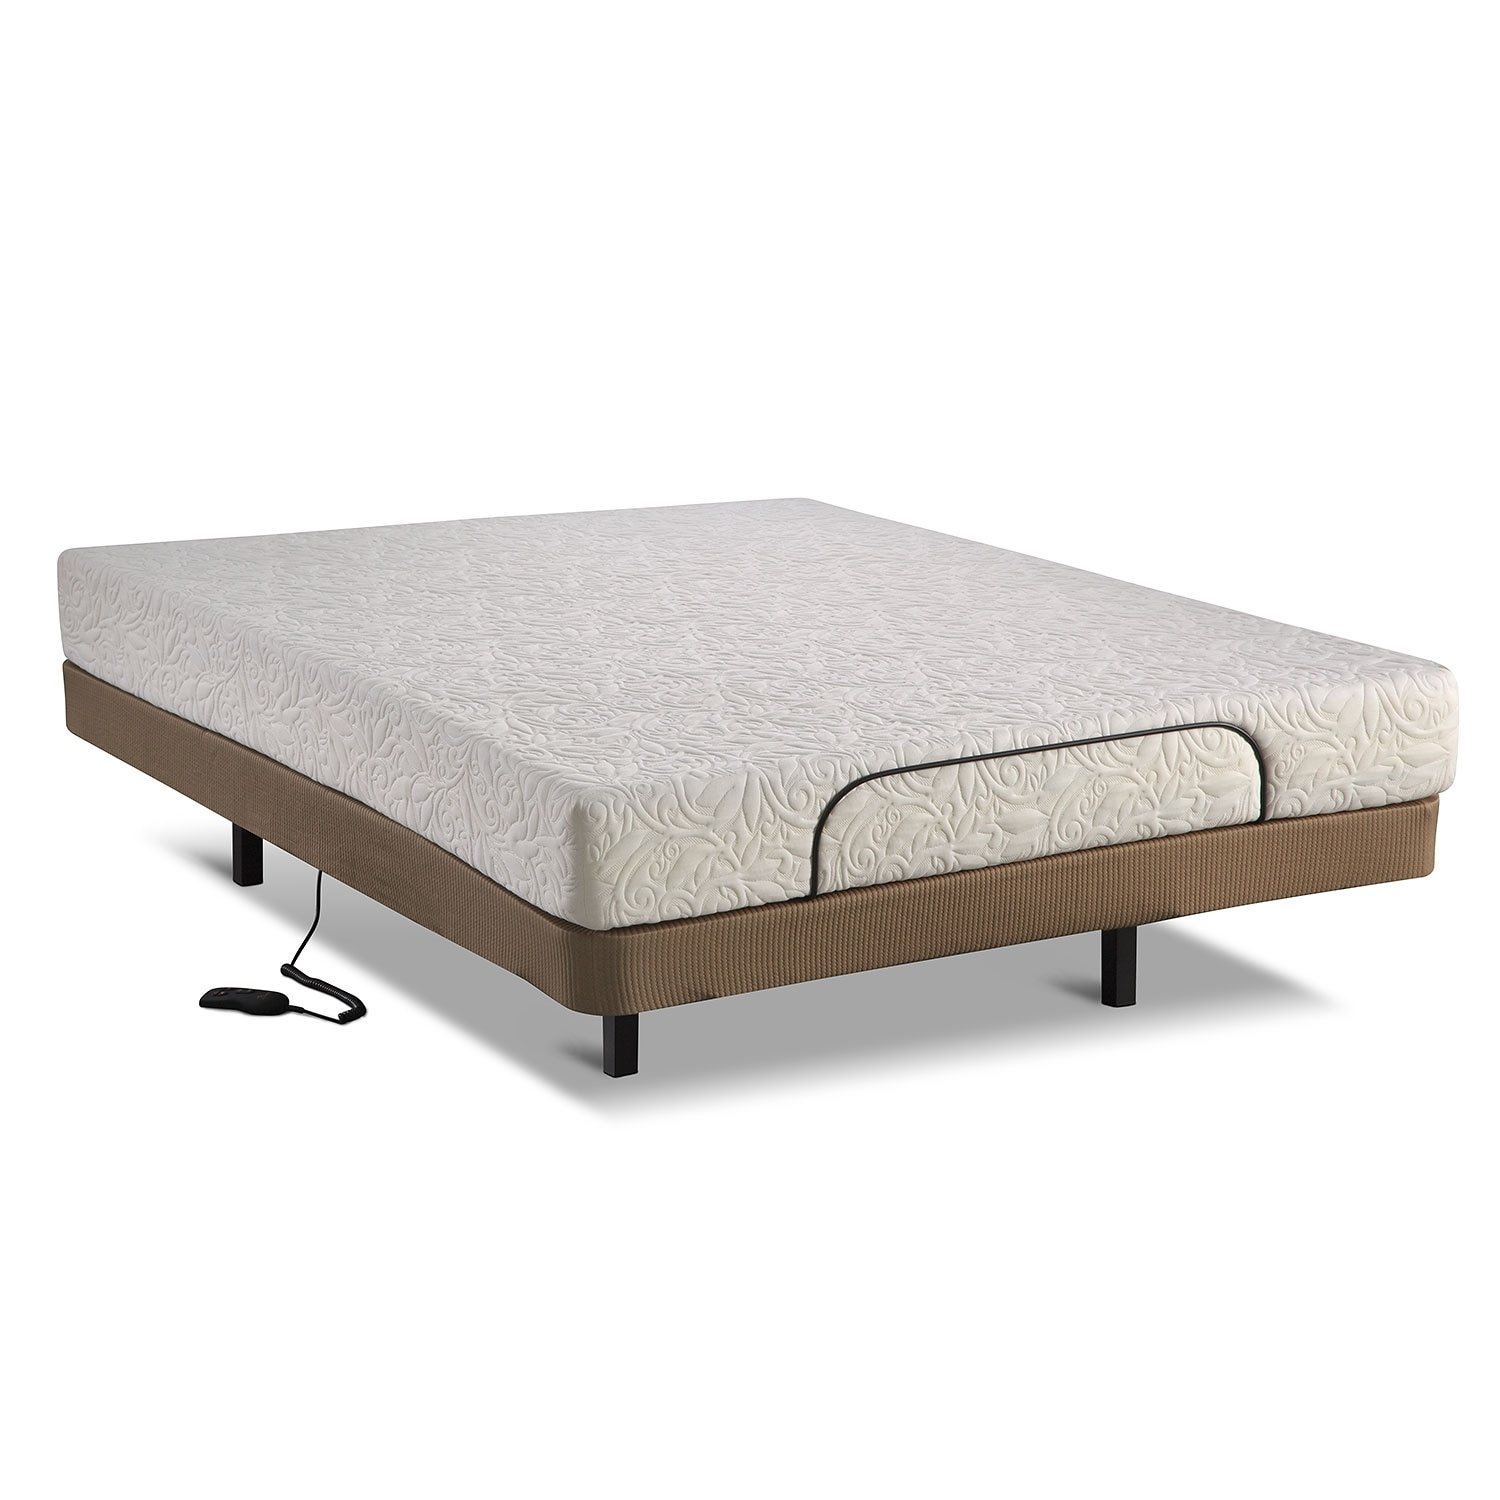 Harmony Adjustable Mattresses And Bedding Queen Mattress Foundation Set Value City Furniture